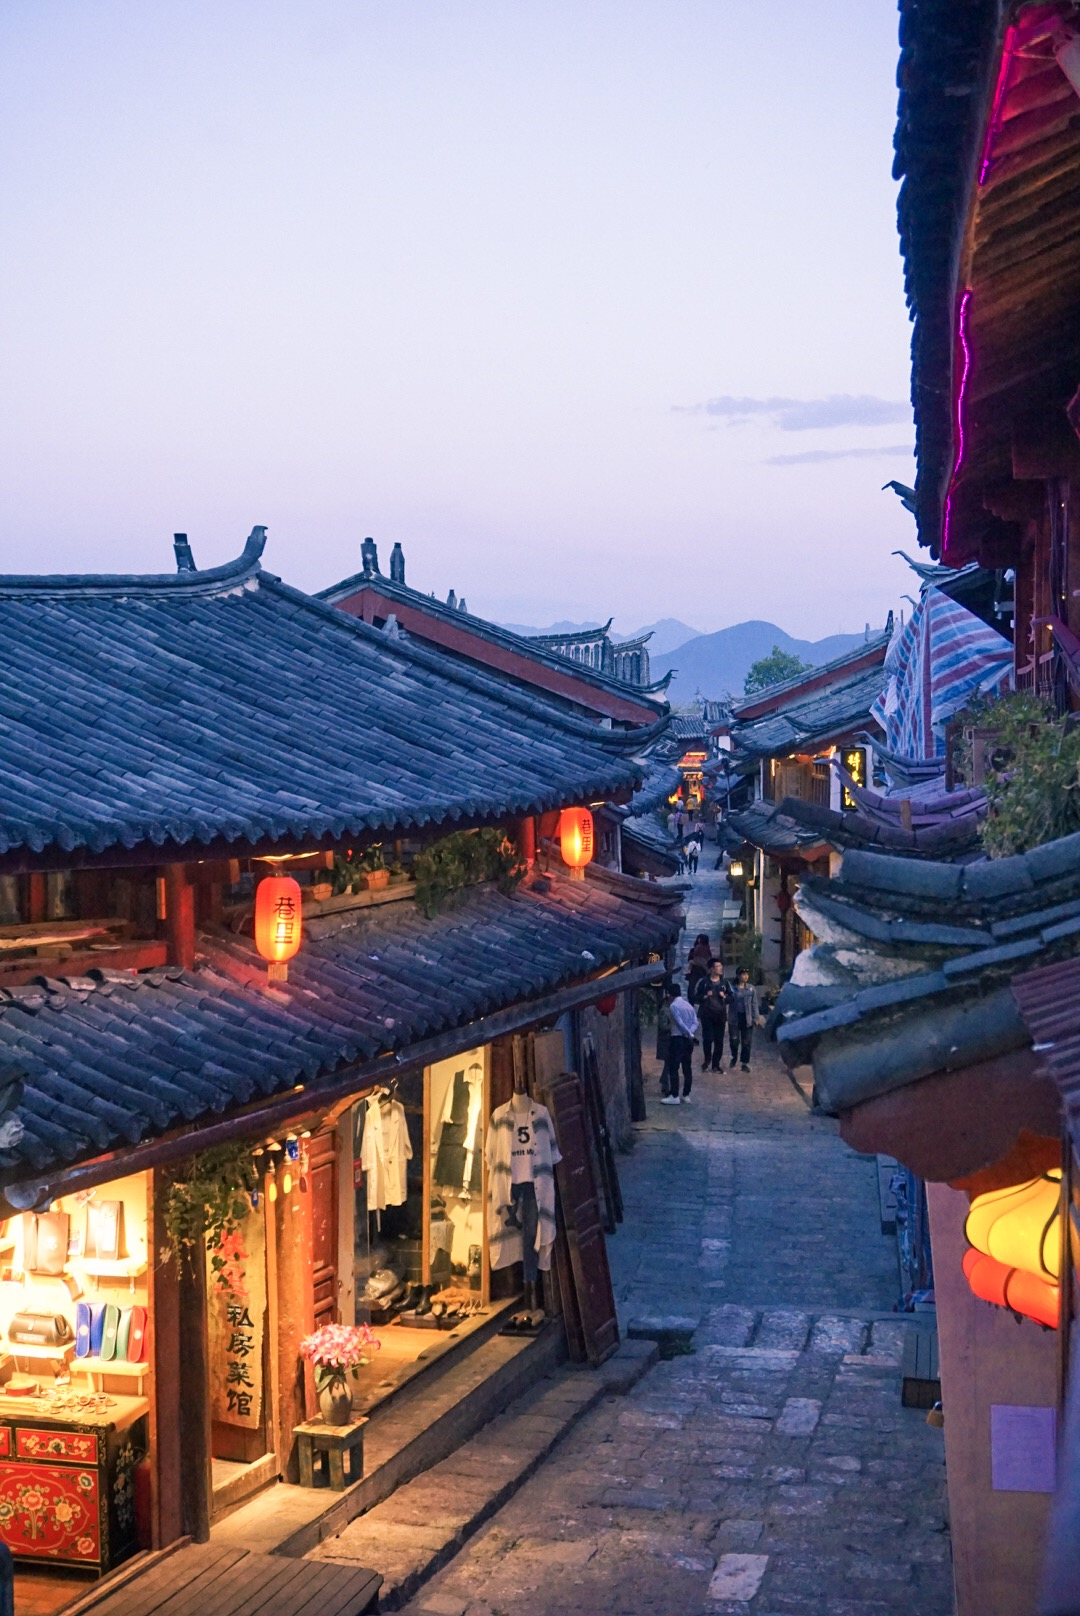 CocoGigiDesign -China-Lijiang 2018_4453.JPG